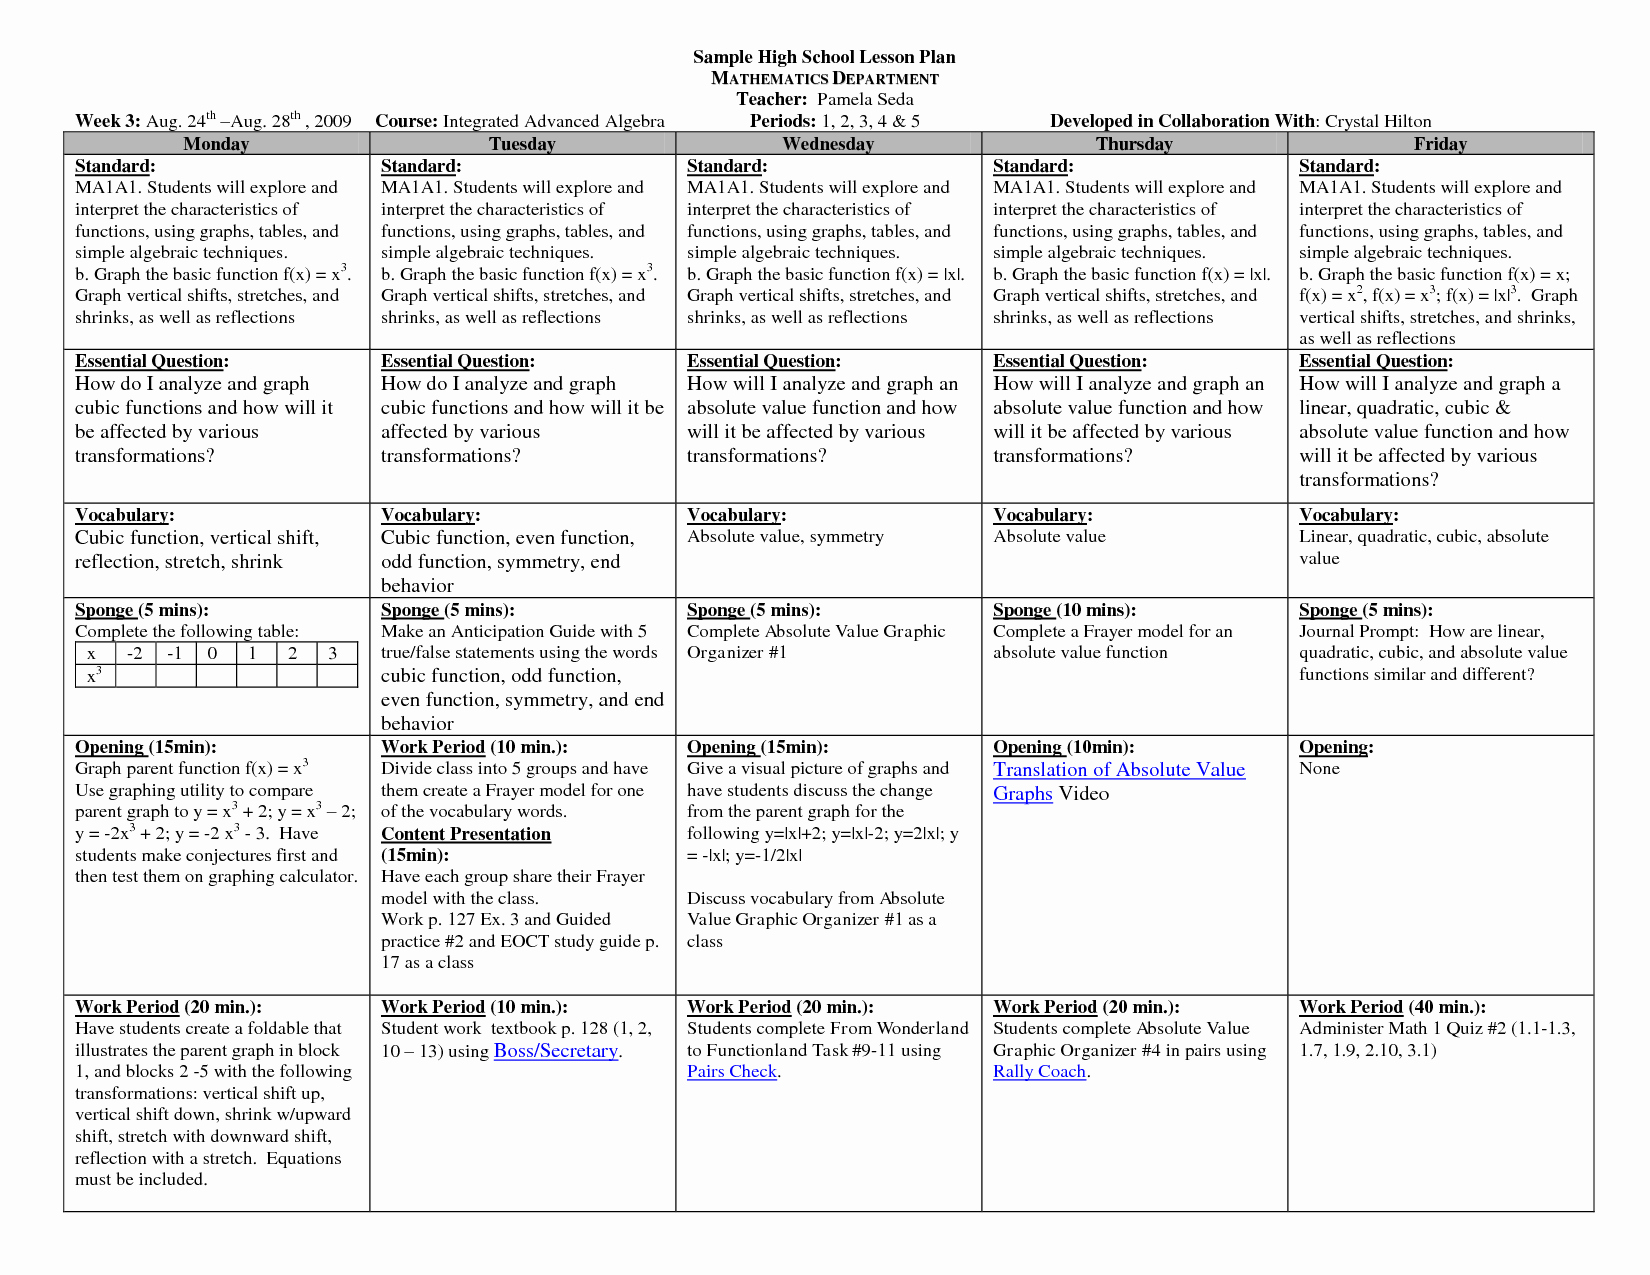 School Age Lesson Plan Template Lovely Math Lesson Plan Template High Schoolsample Hs Math Weekly